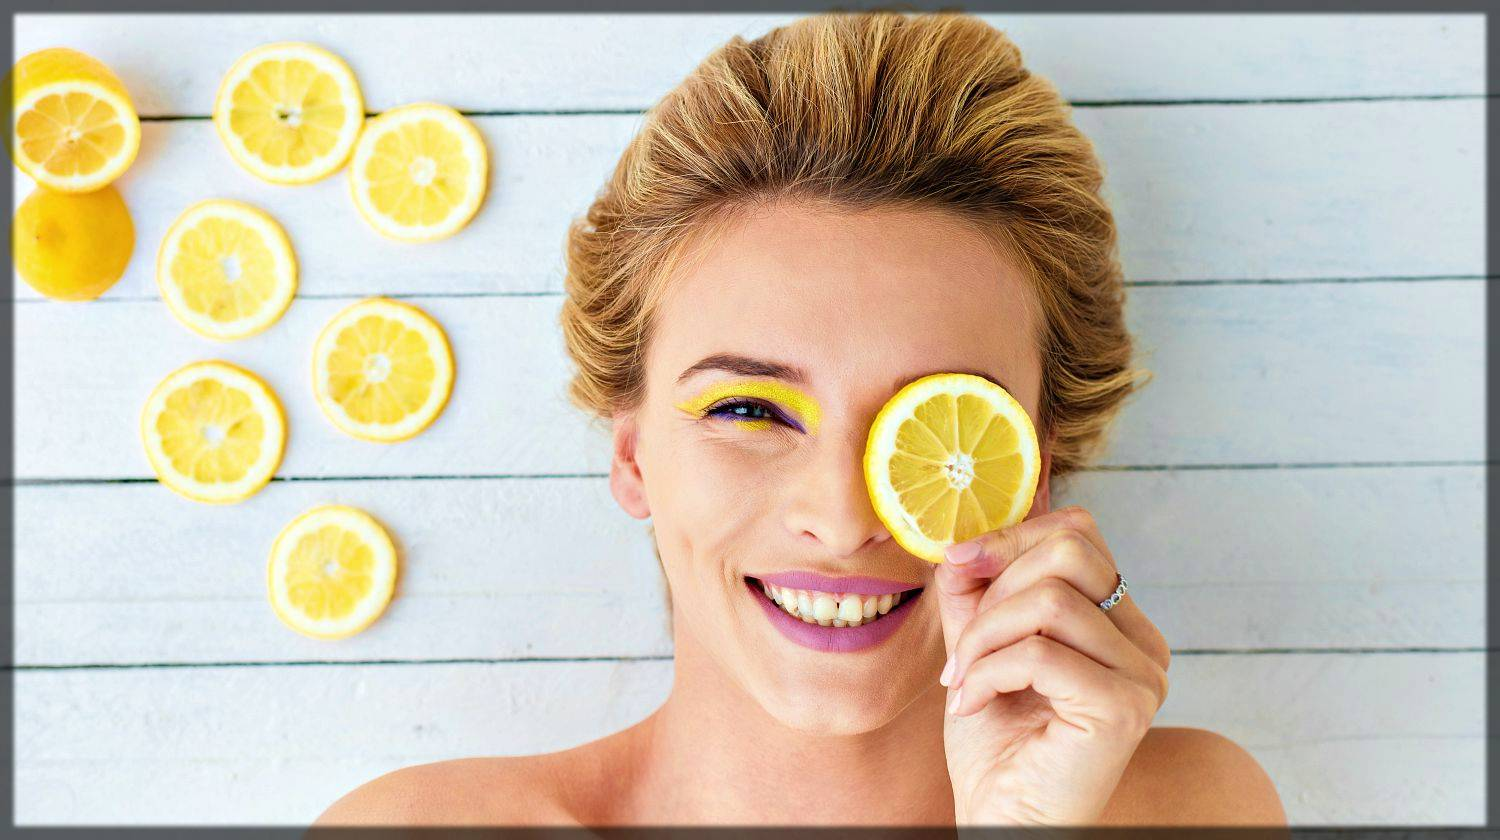 use lemon as a natural remedies for acne scars and blemishes